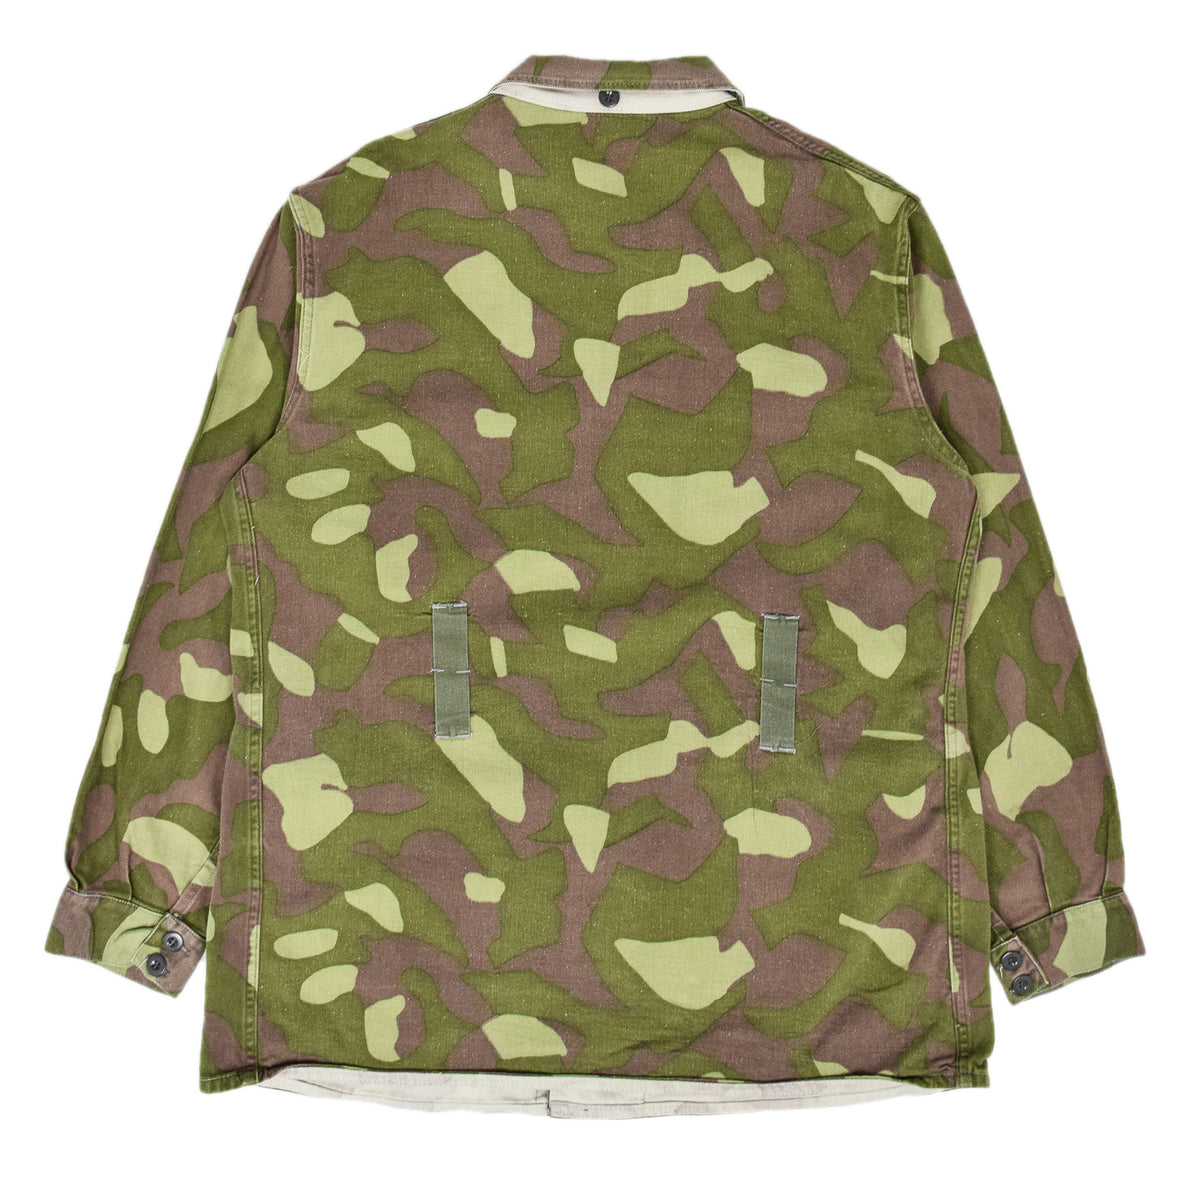 Vintage 70s Military Finnish Army Green Camo Mountain Field Jacket XL back